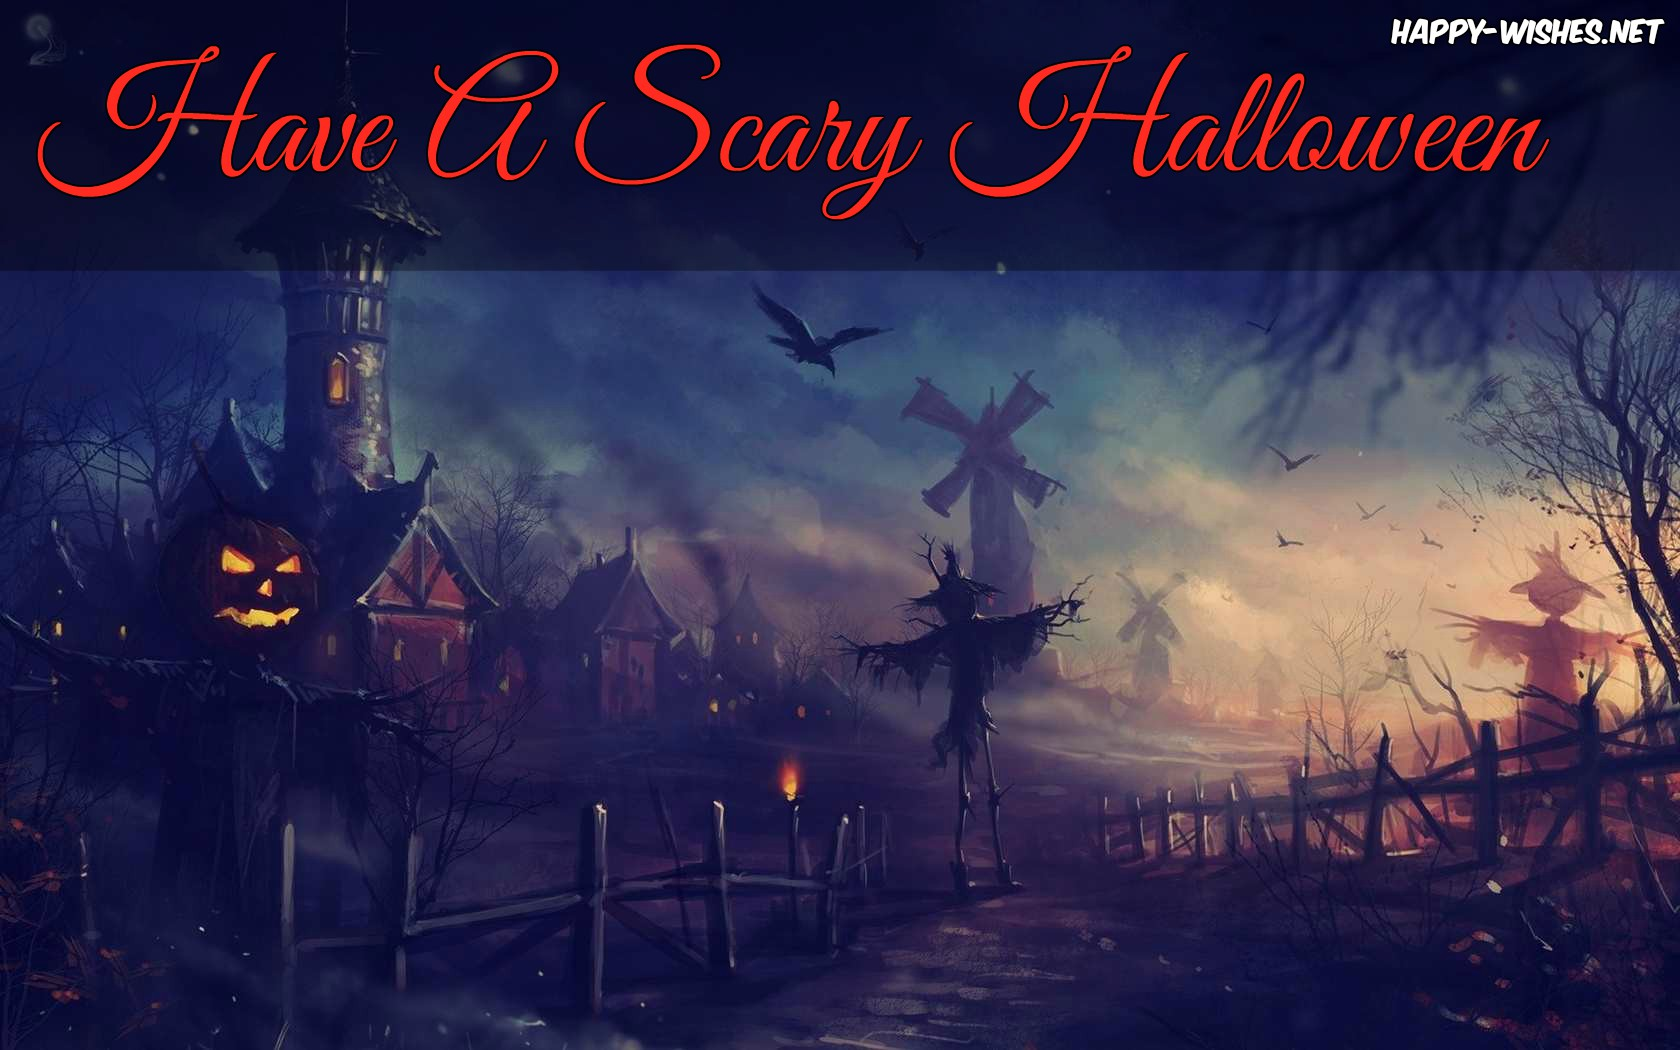 Have A Scary Halloween Images